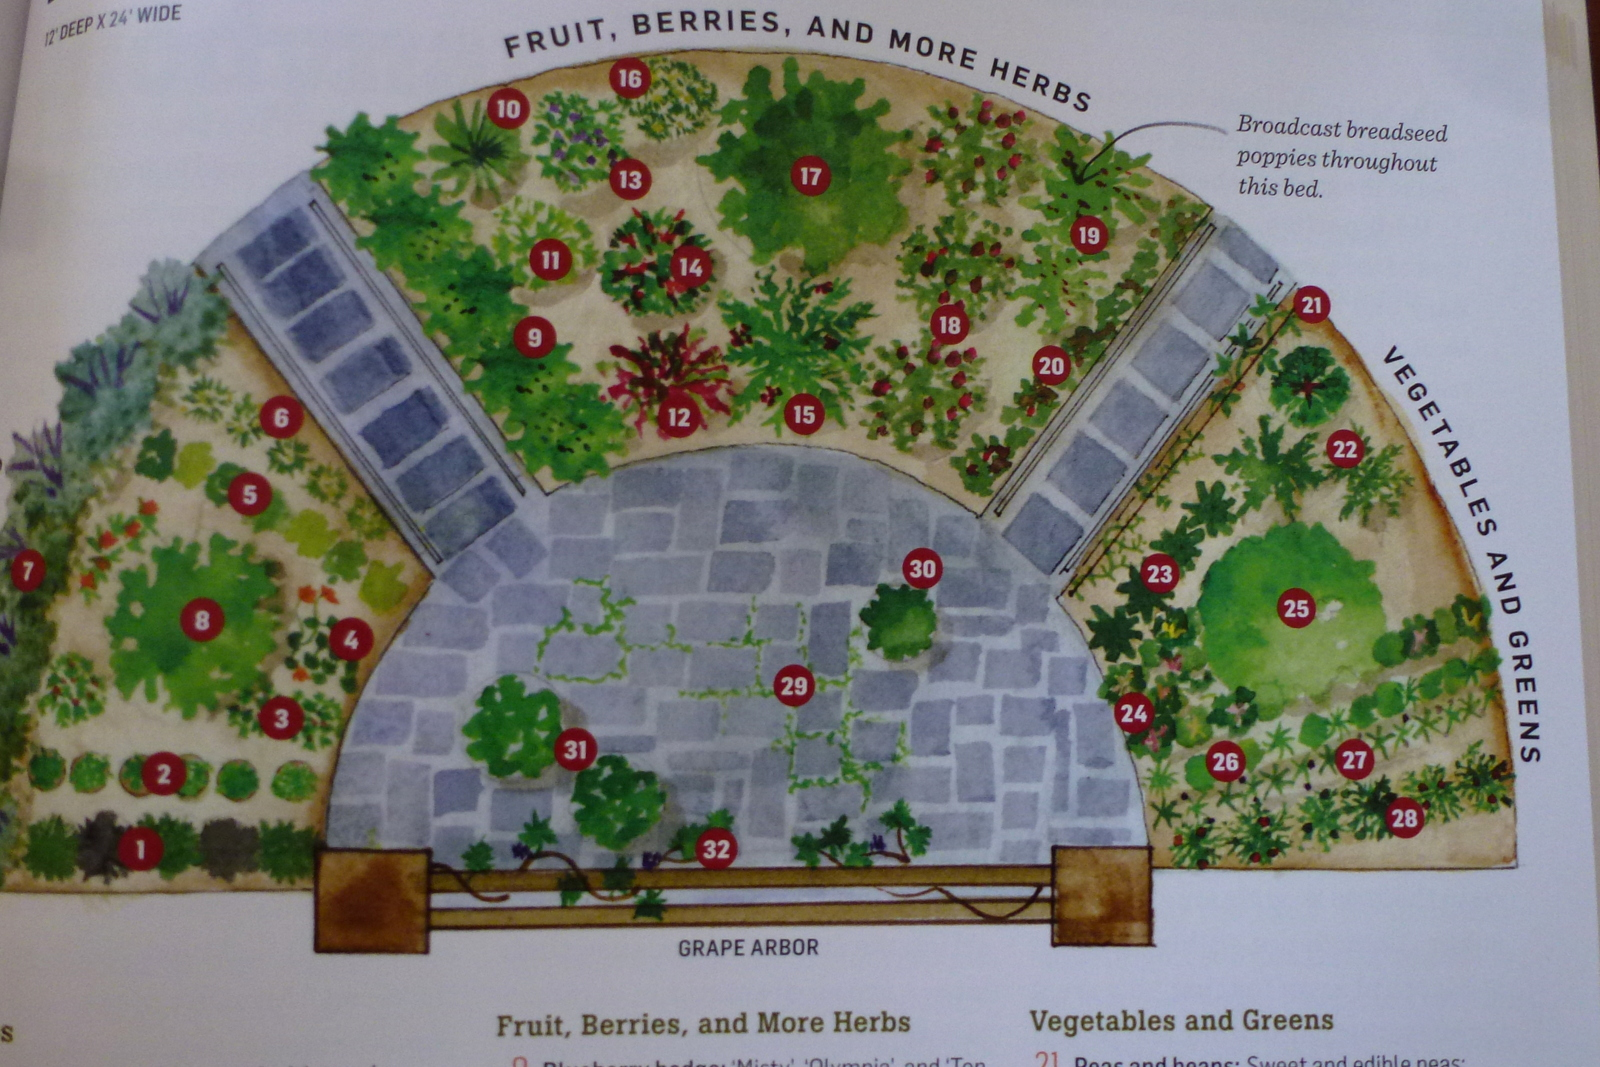 73 ways to design food gardens